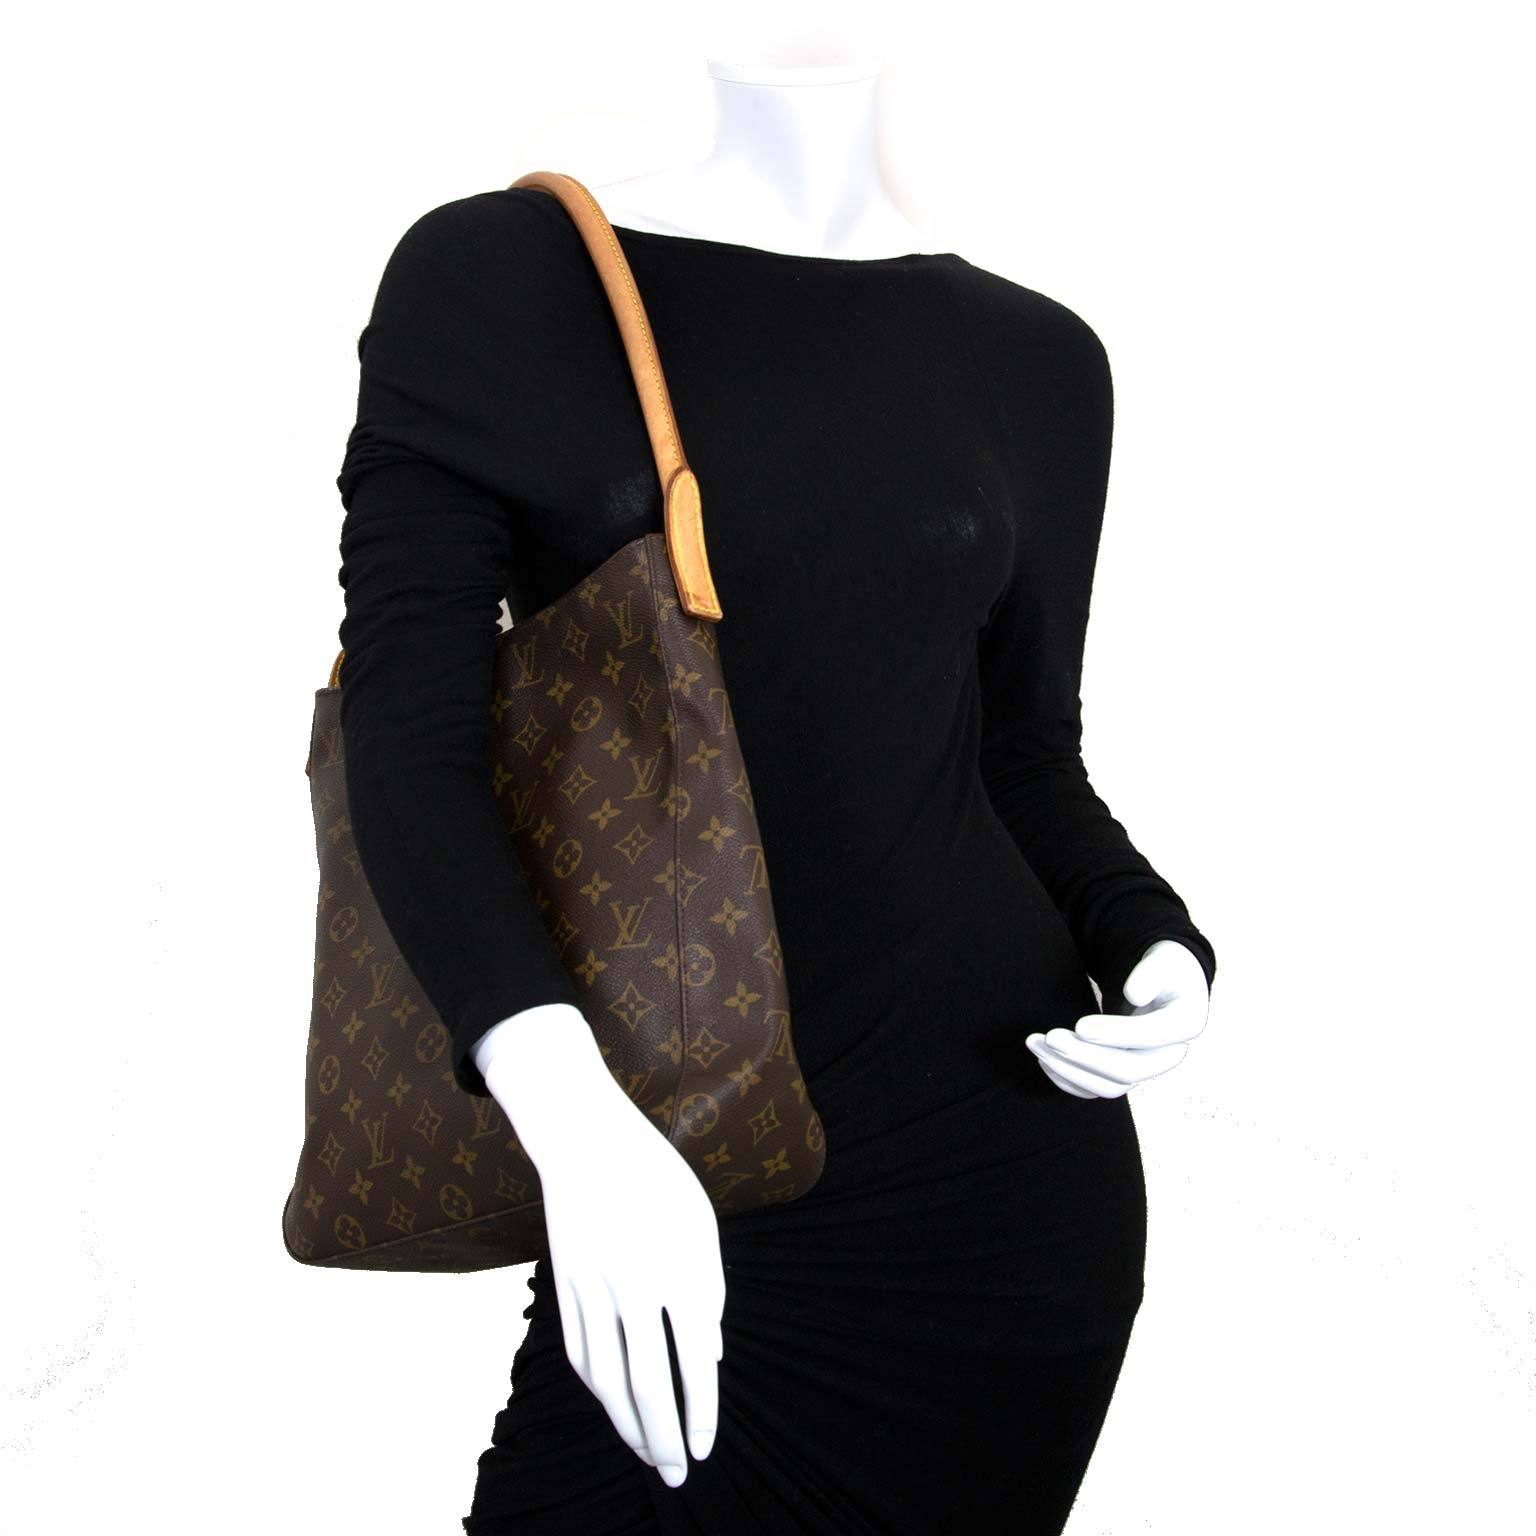 422a31fc7f35 ... louis vuitton monogram looping gm bag now for sale at labellov vintage  fashion webshop belgium